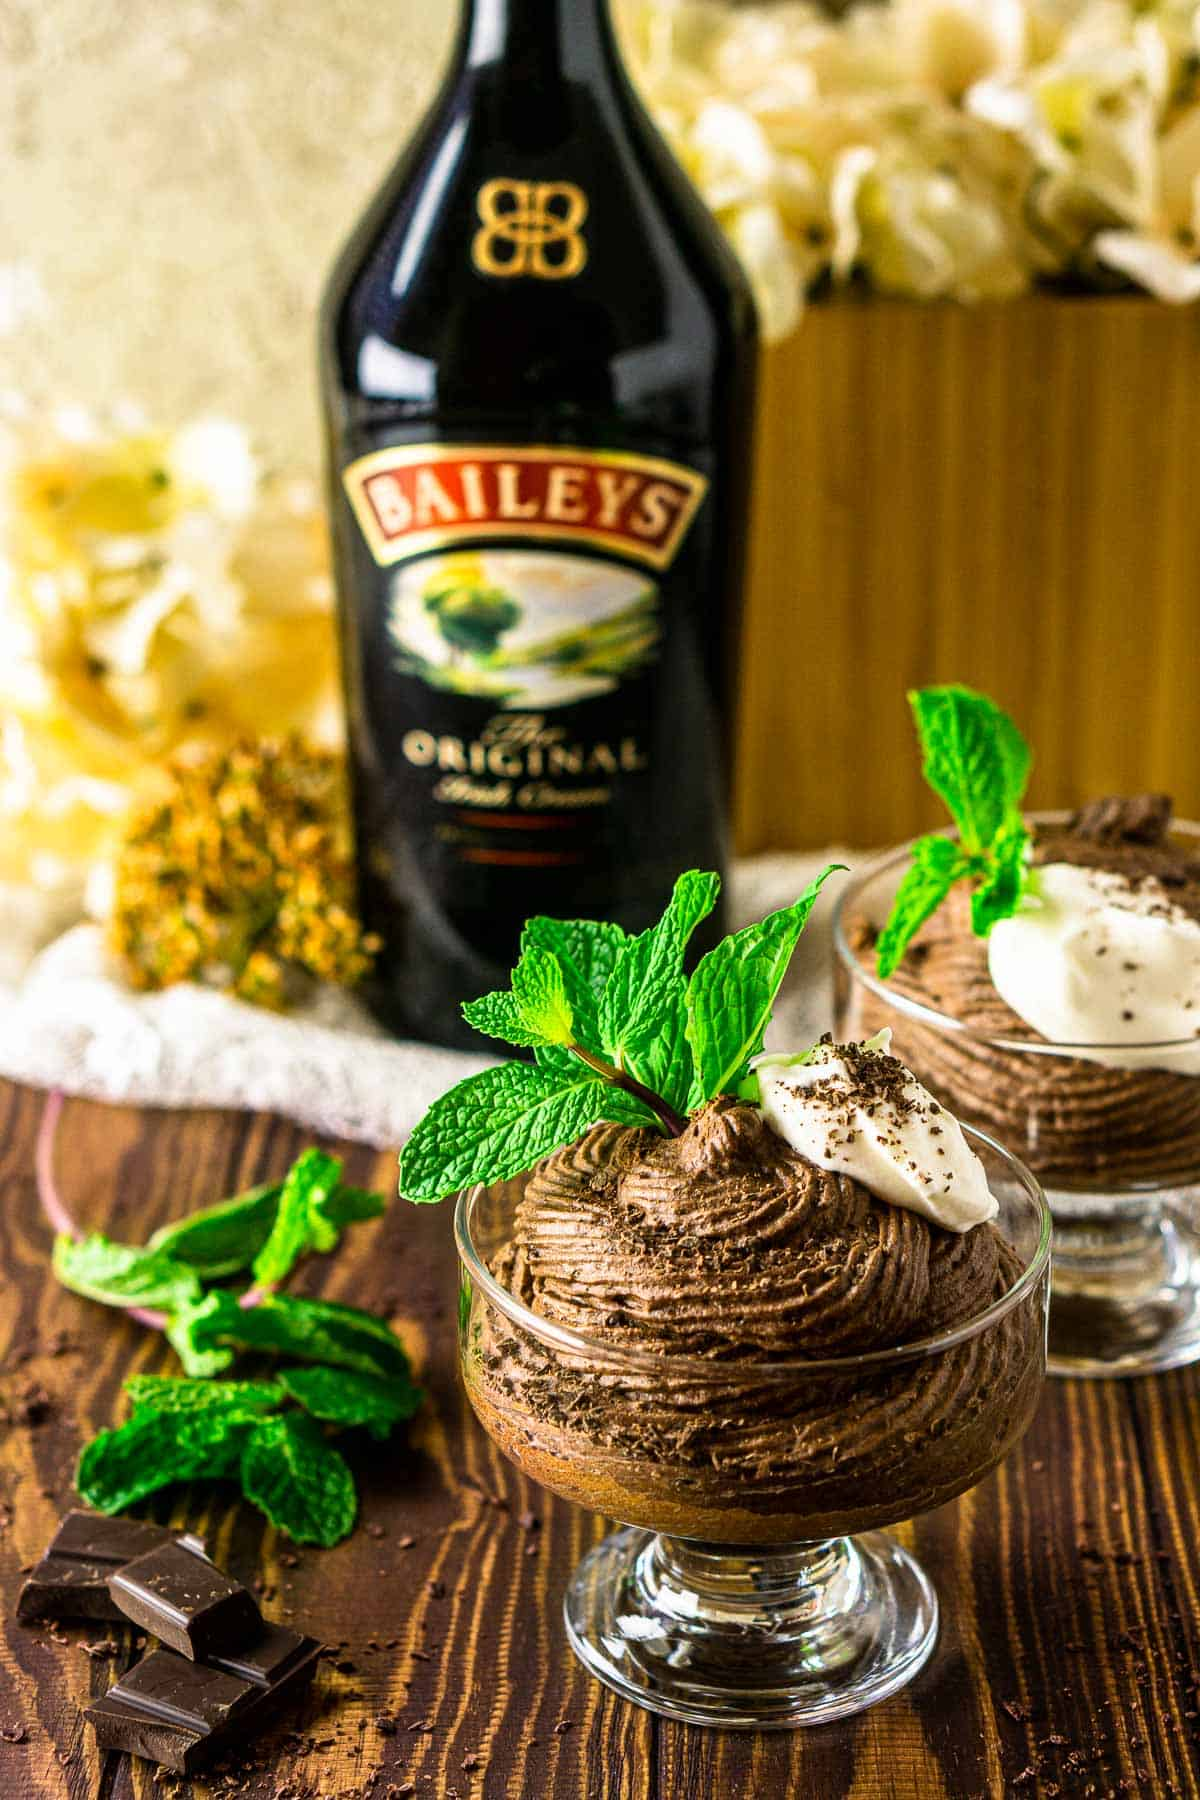 Looking down on the Baileys chocolate mousse with a bottle of Irish cream behind it.